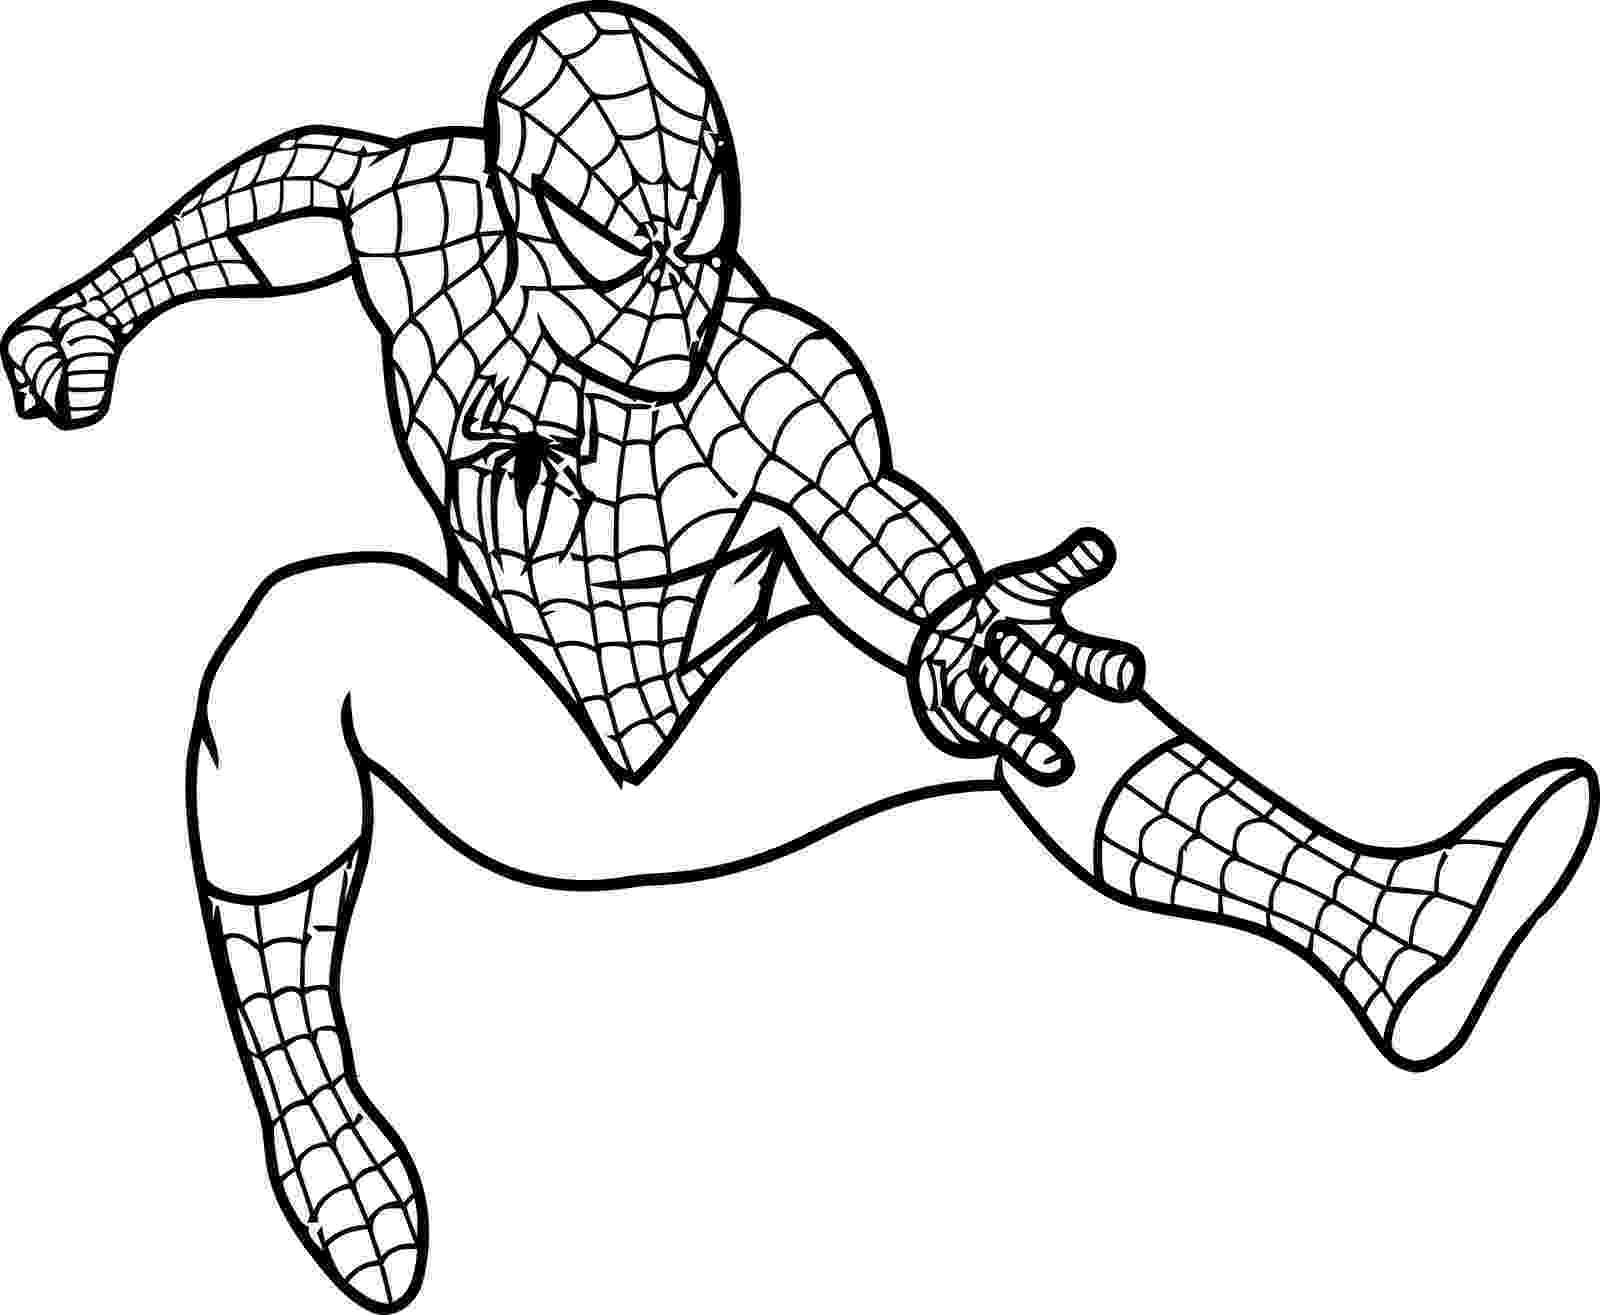 spiderman coloring pages printables spiderman 3 coloring pages coloringpages1001com coloring spiderman pages printables